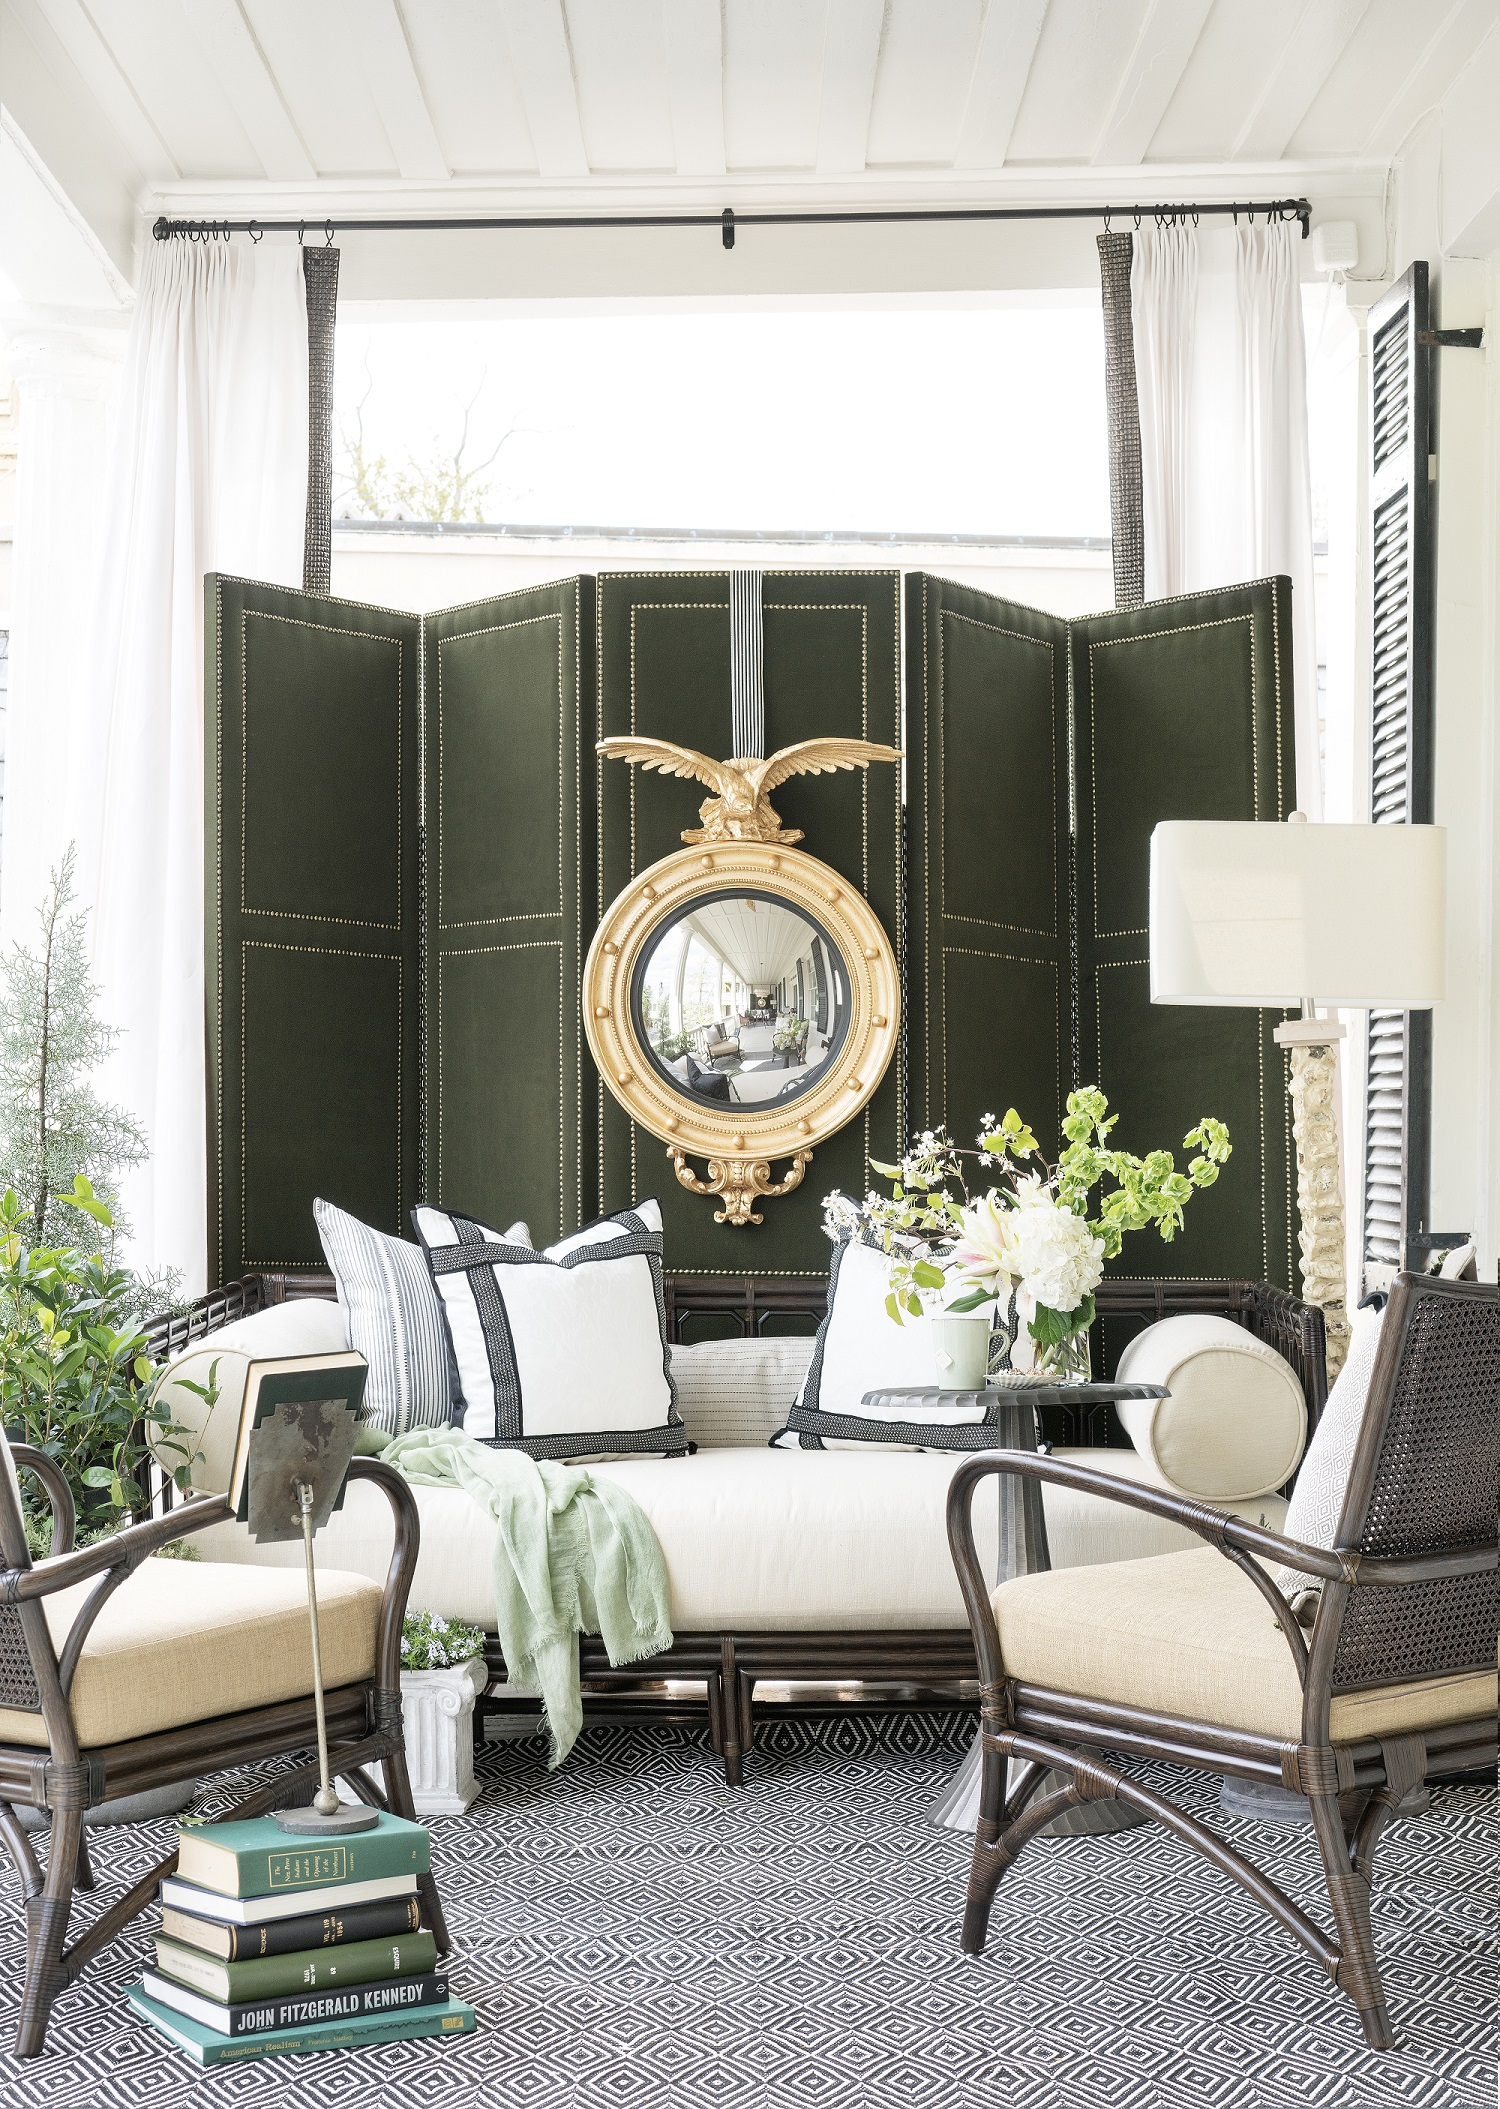 GordonDunning-Interior-Design-Georgia